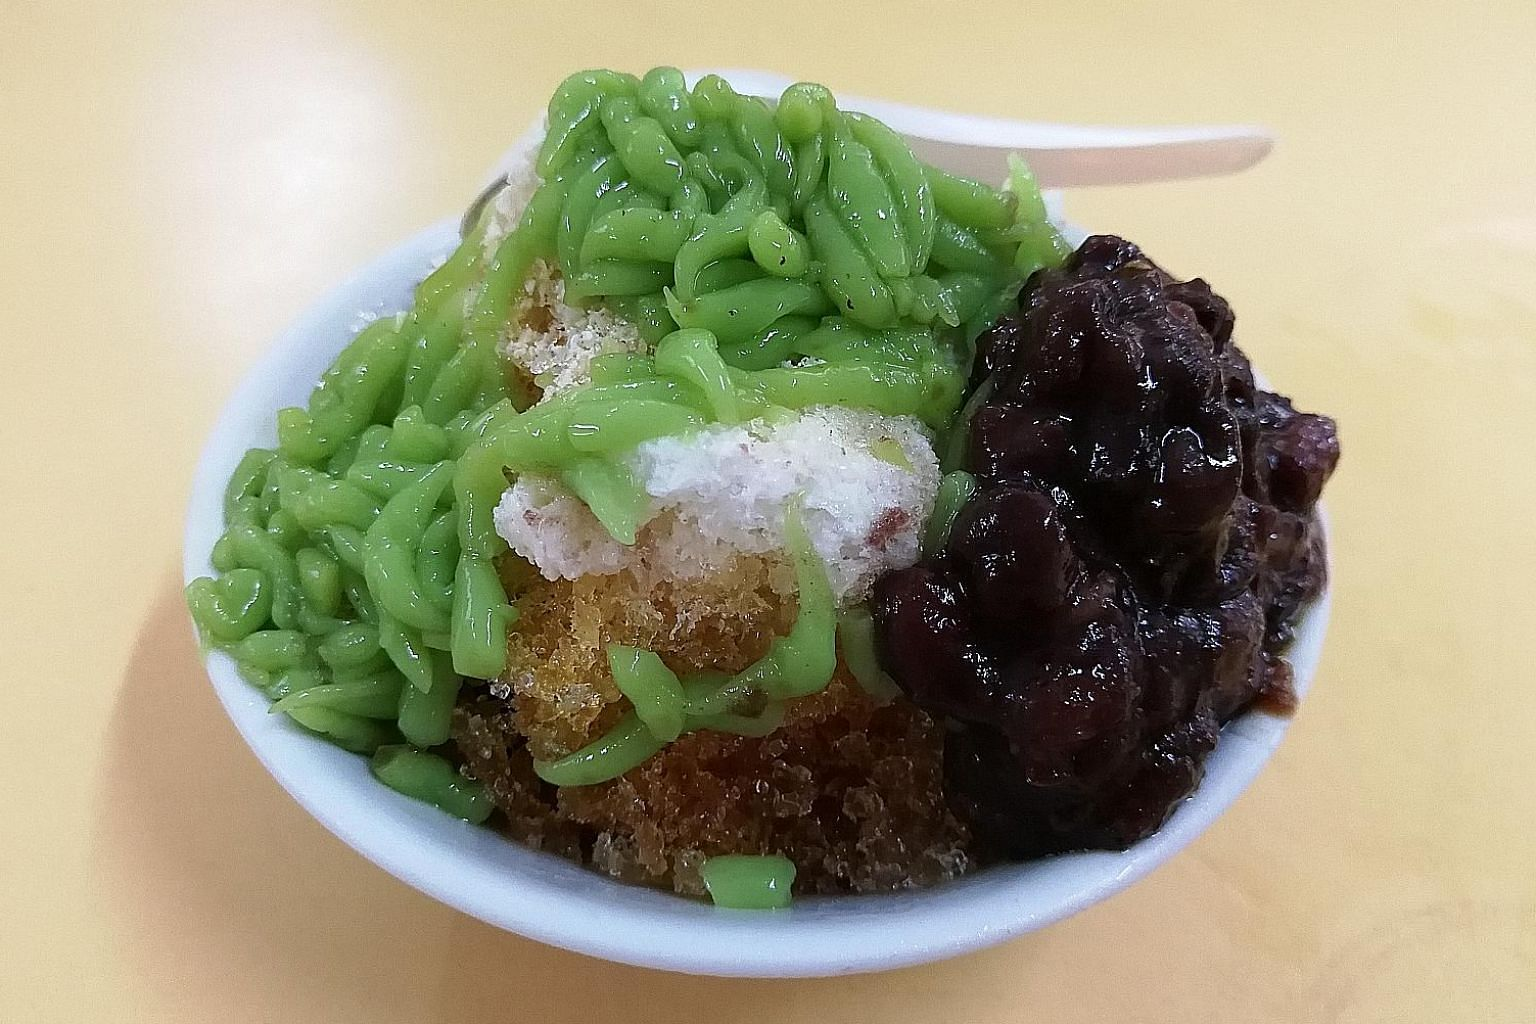 Old Amoy's chendol has gula melaka sourced from East Malaysia and red beans slow-cooked over charcoal.